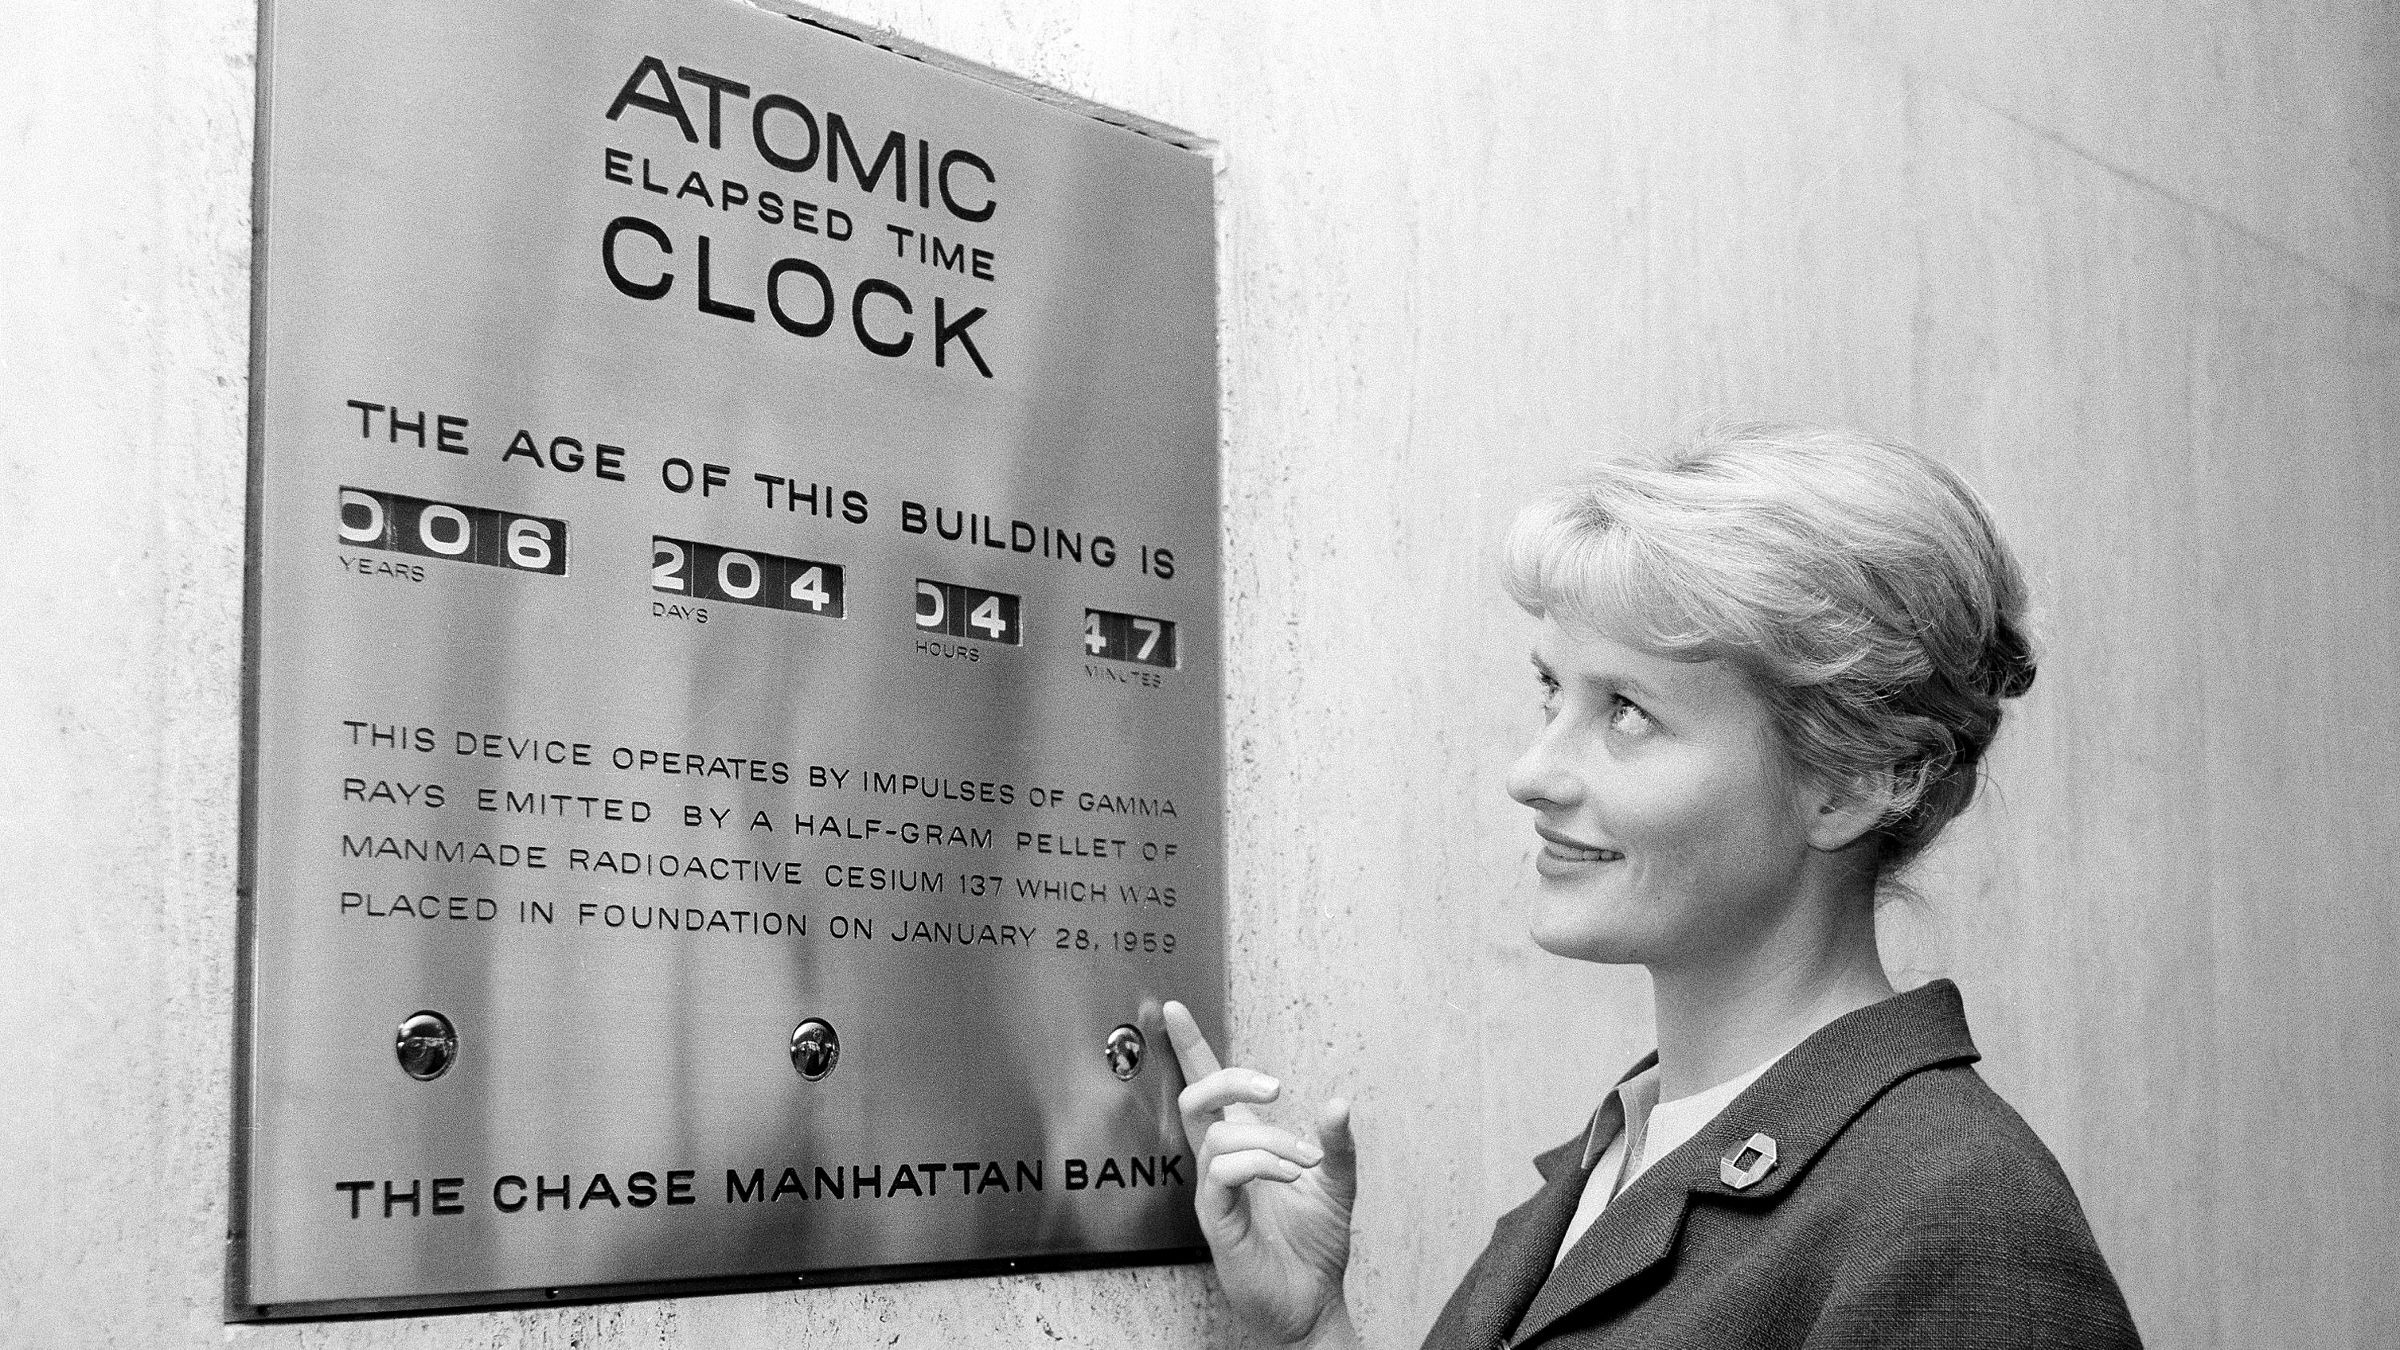 Tour guide Irma Imfeld points out an atomic clock located in the financial section's Chase Manhattan Bank in downtown New York City, Sept. 17, 1963. The clock works on a pellet of Cesium 137. The impulses of gamma rays emitted by the pellet activate the clock which shows the age of the building. The pellet was placed on the foundation of the building when it was built in 1959.